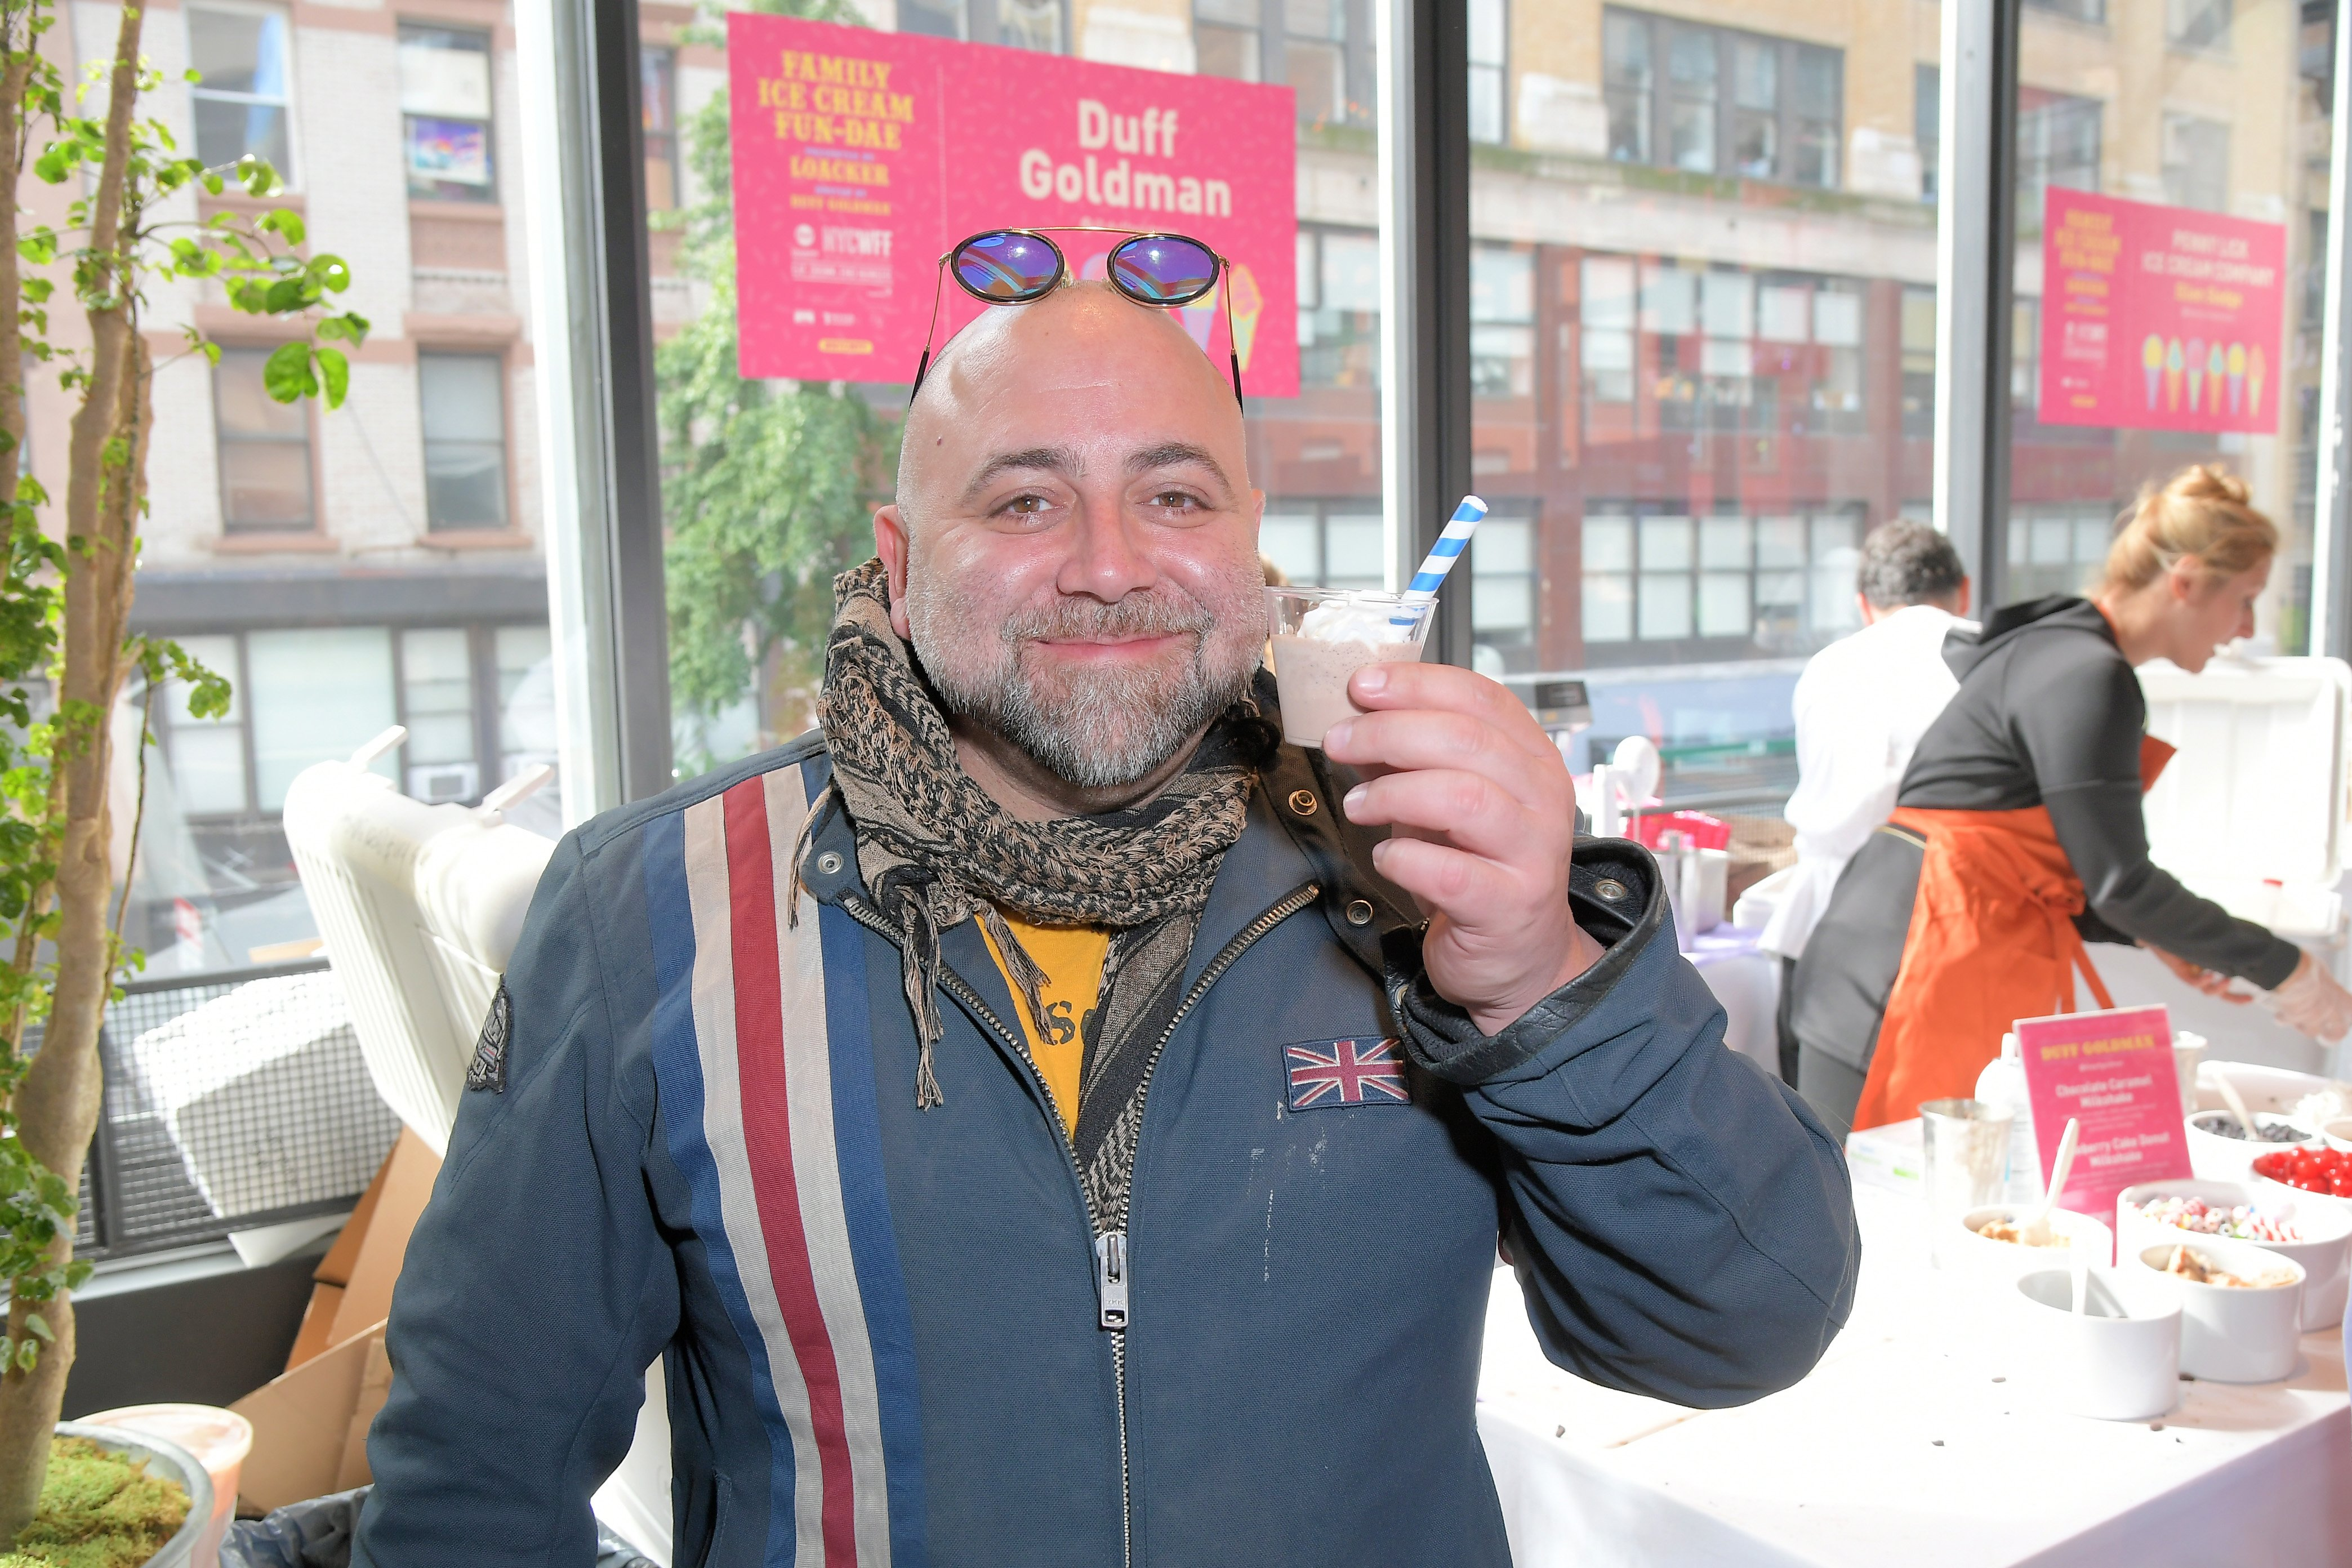 Duff Goldman attends the Wine and Food Festival in New York, October, 2019. | Photo: Getty Images.